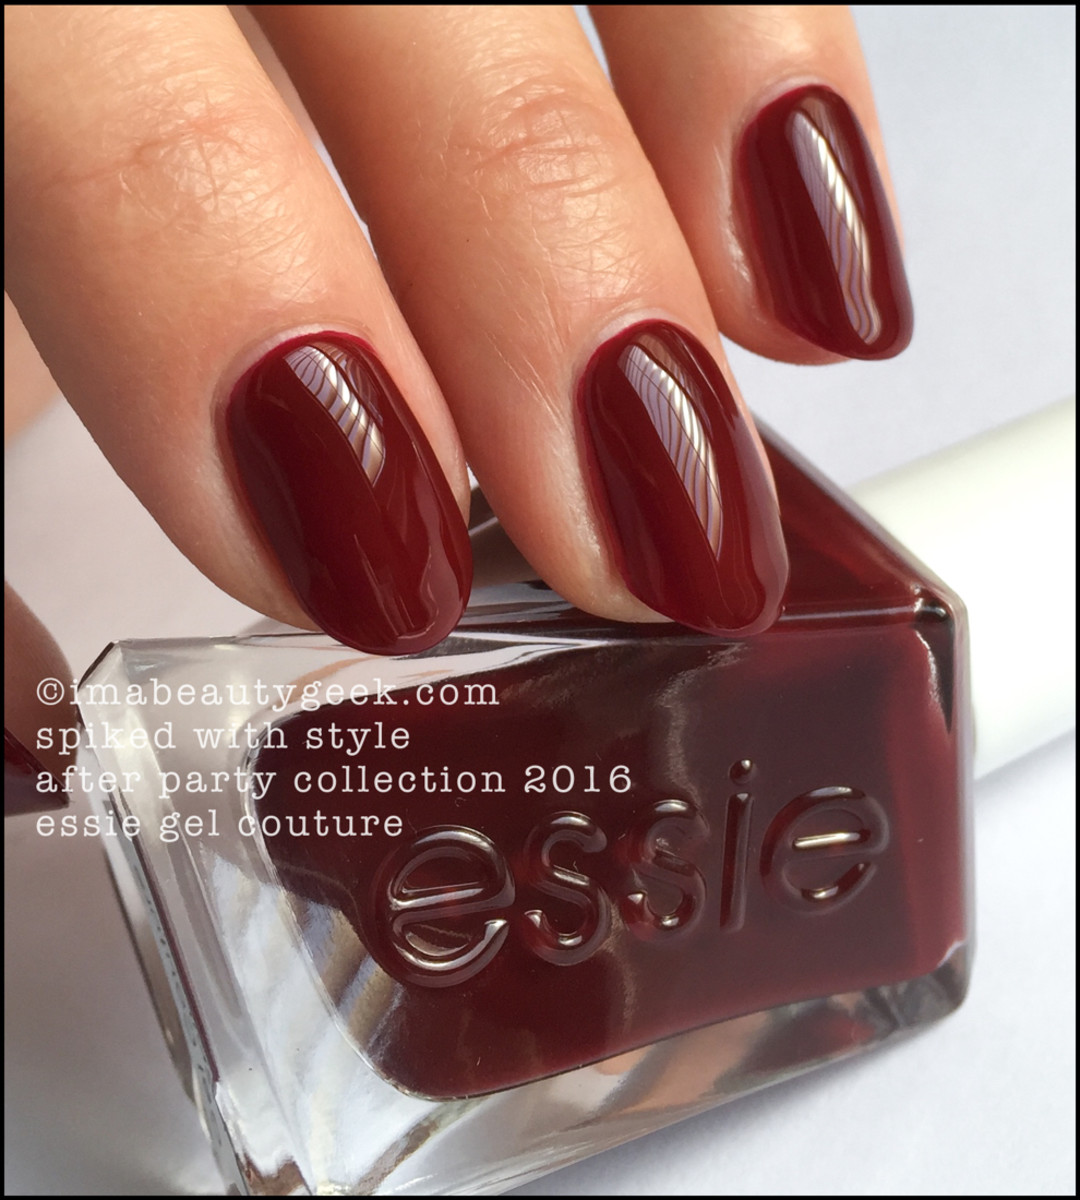 Essie Spiked With Style_Essie Gel Couture Review Swatches